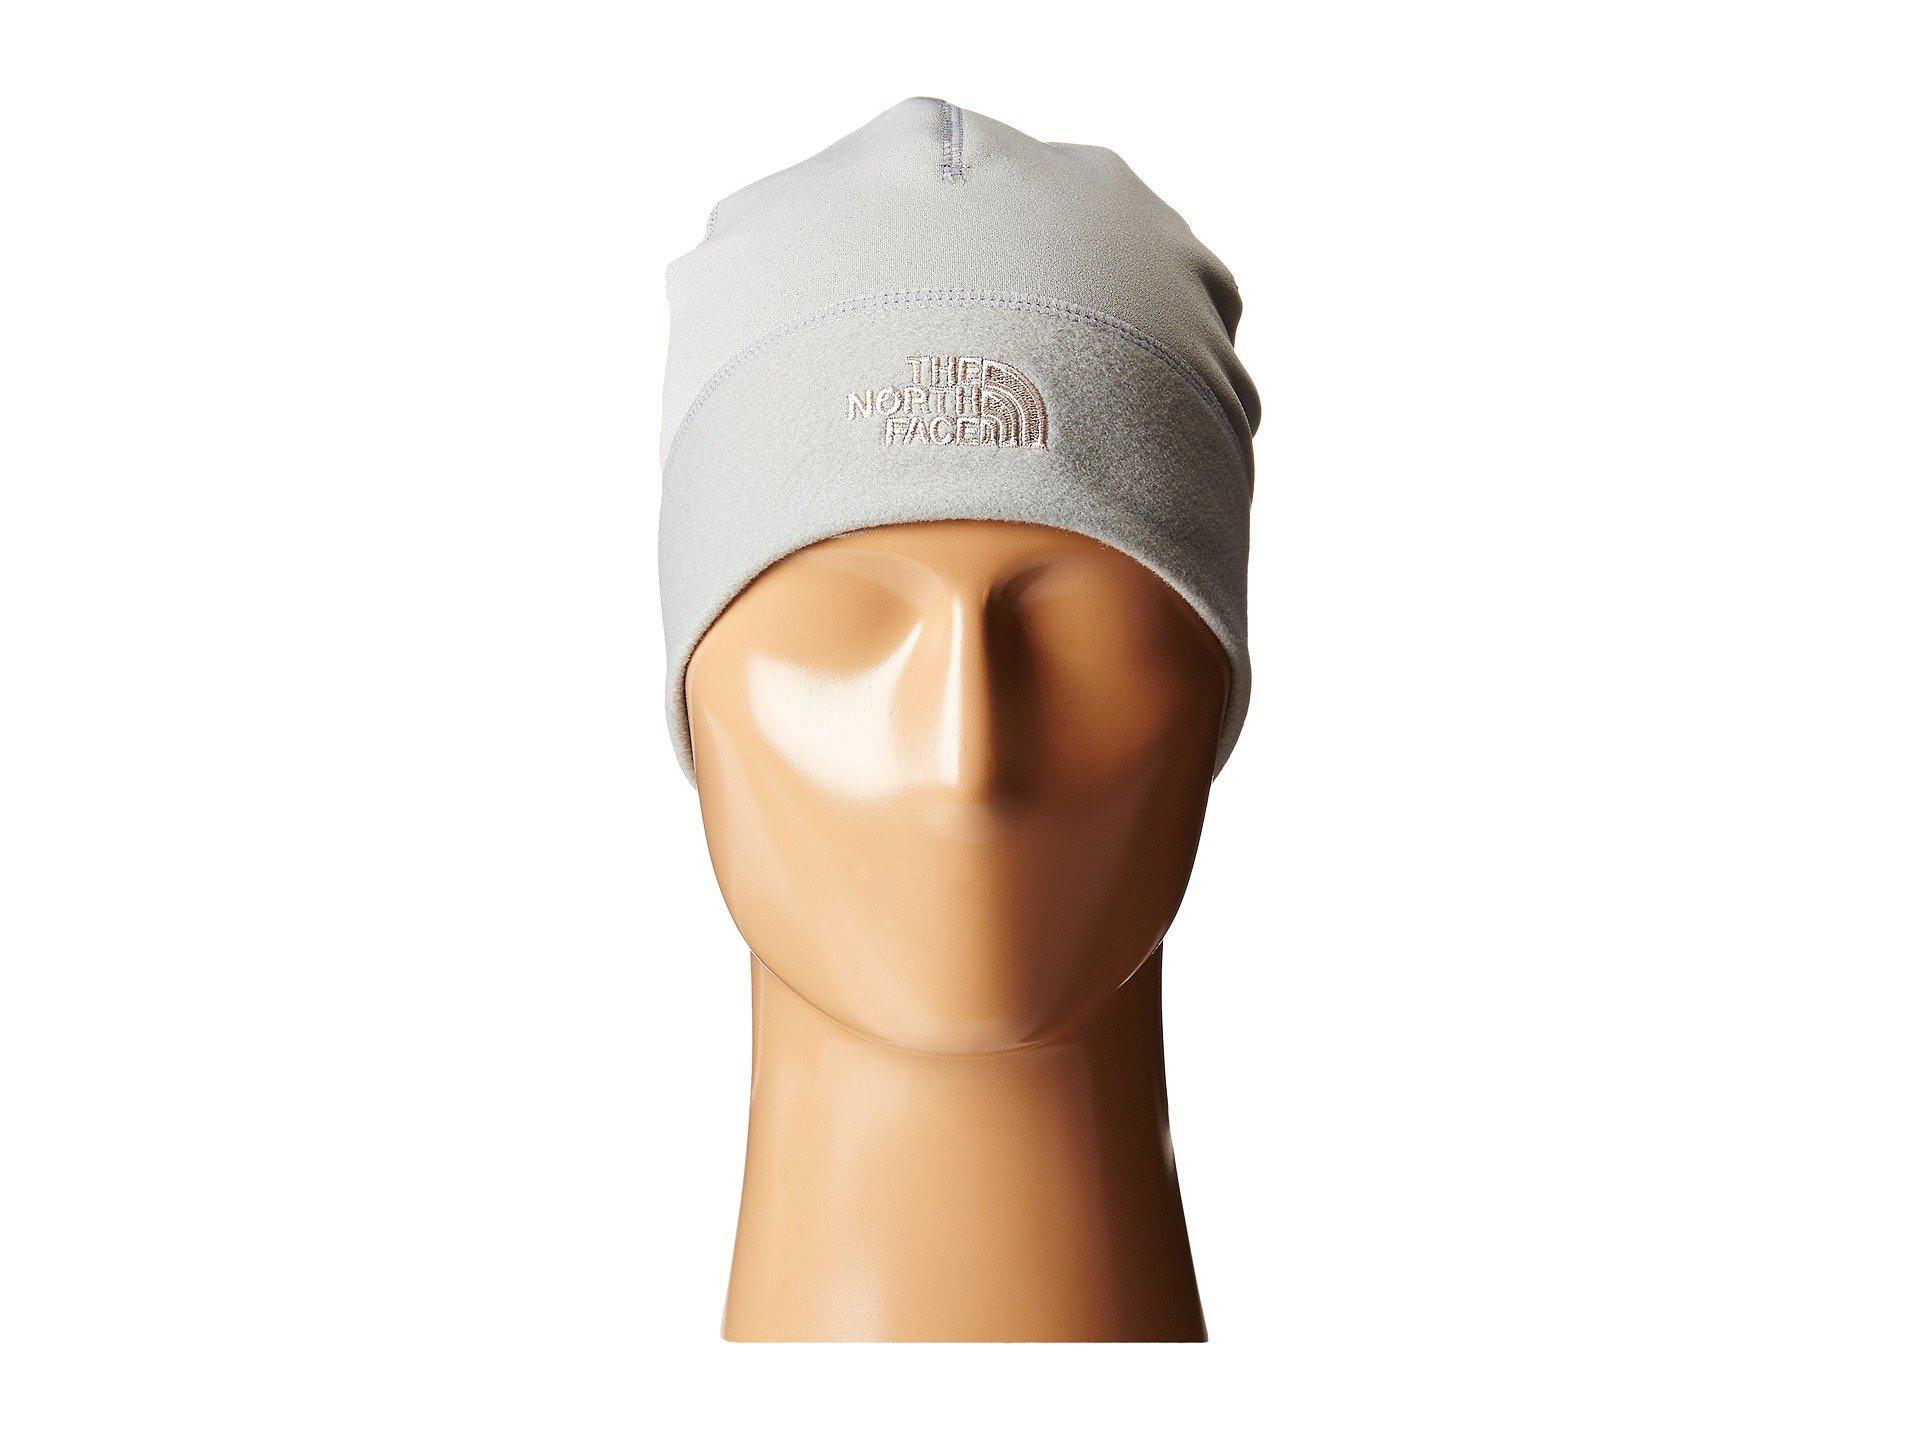 cccc2ae29c9 Lyst - The North Face Ascent Beanie in Gray